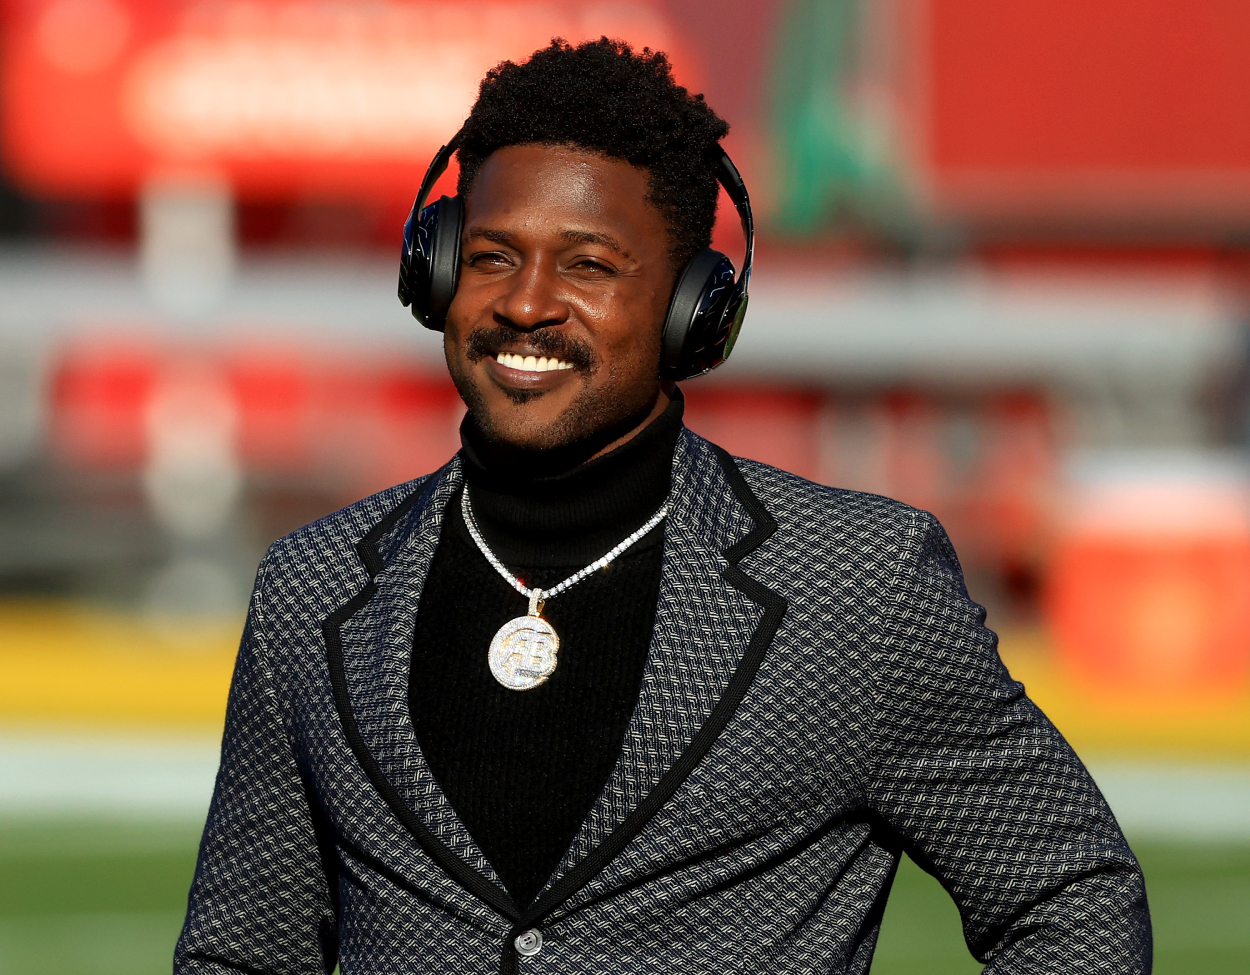 Antonio Brown Would Be a 'Great Fit' With a Star QB Not Named Tom Brady, According to a Notable Hall of Famer